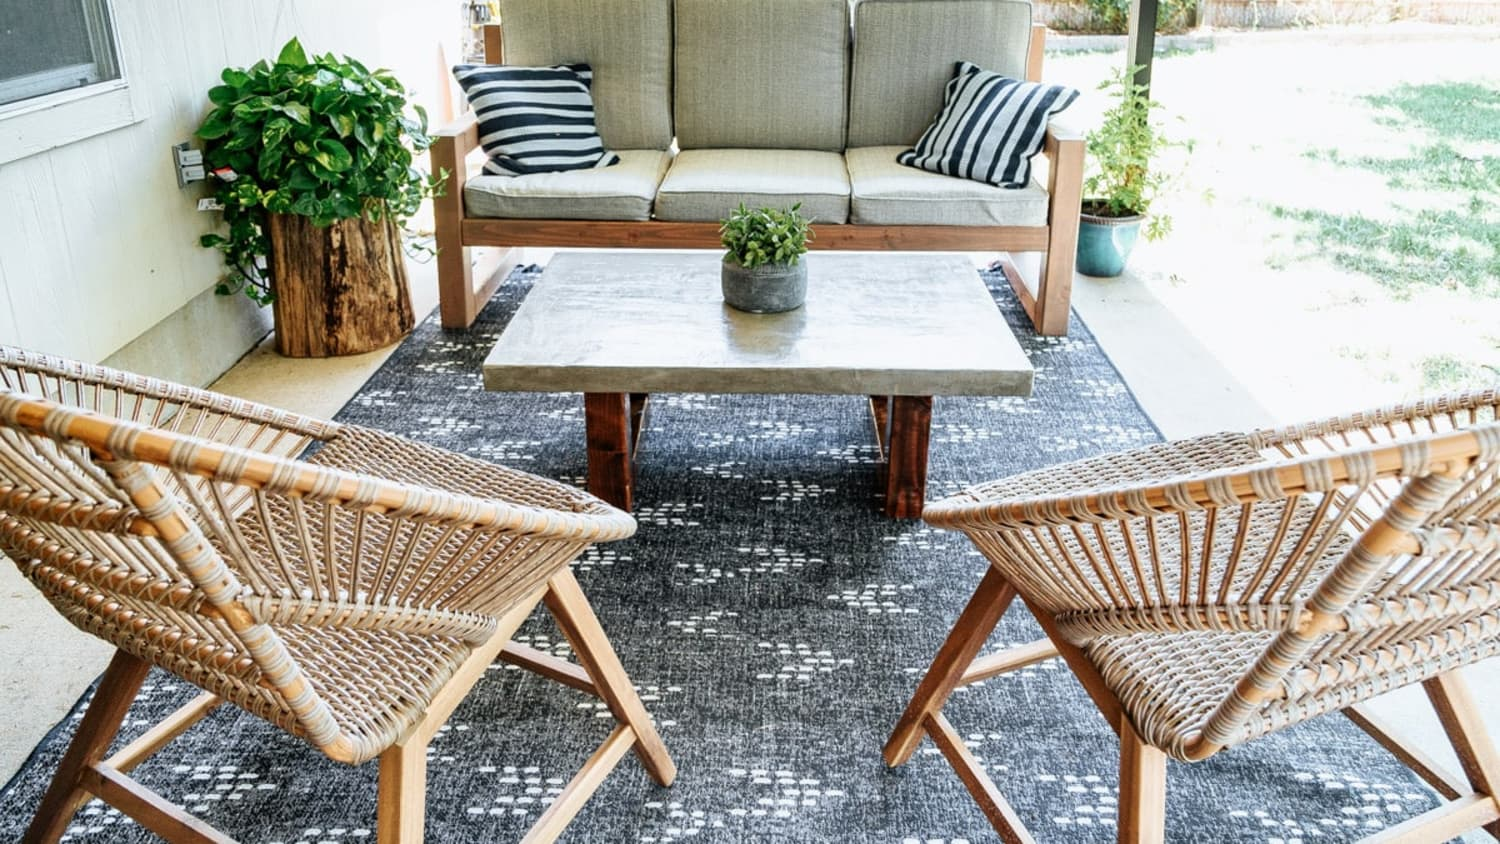 14 Diy Coffee Table Ideas Easy Ways To Build A Coffee Table Apartment Therapy